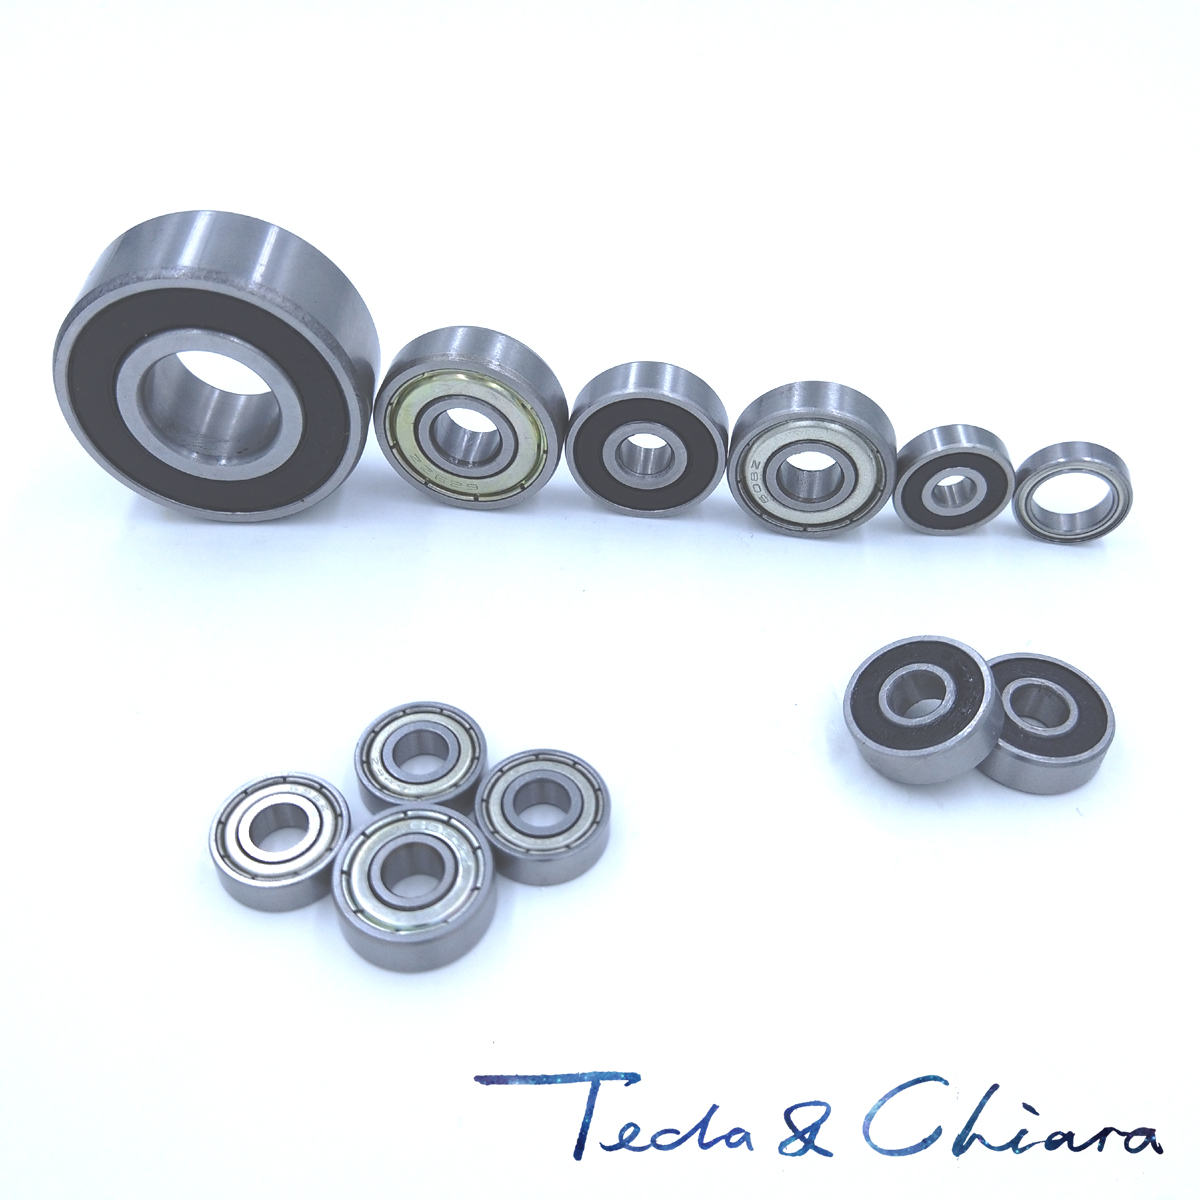 10Pcs 1Lot 626 626ZZ 626RS 626-2Z 626Z 626-2RS ZZ RS RZ 2RZ Deep Groove Ball Bearings 6 X 19 X 6mm